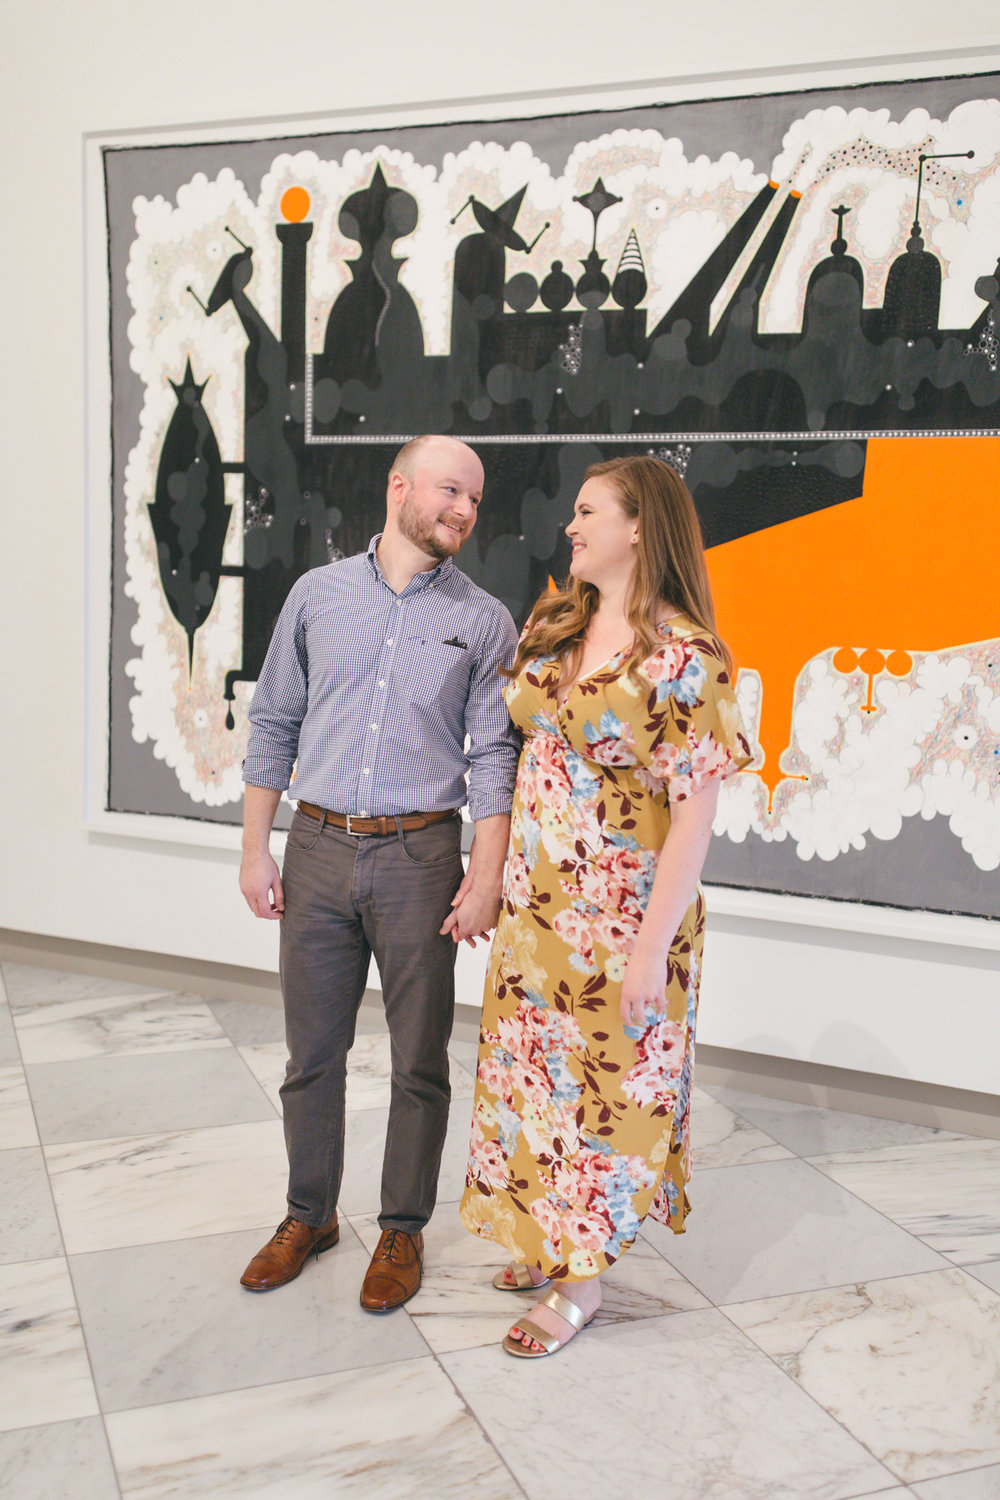 Smithsonian National Portrait Gallery Engagement Session | Maral Noori Photography | Washington DC